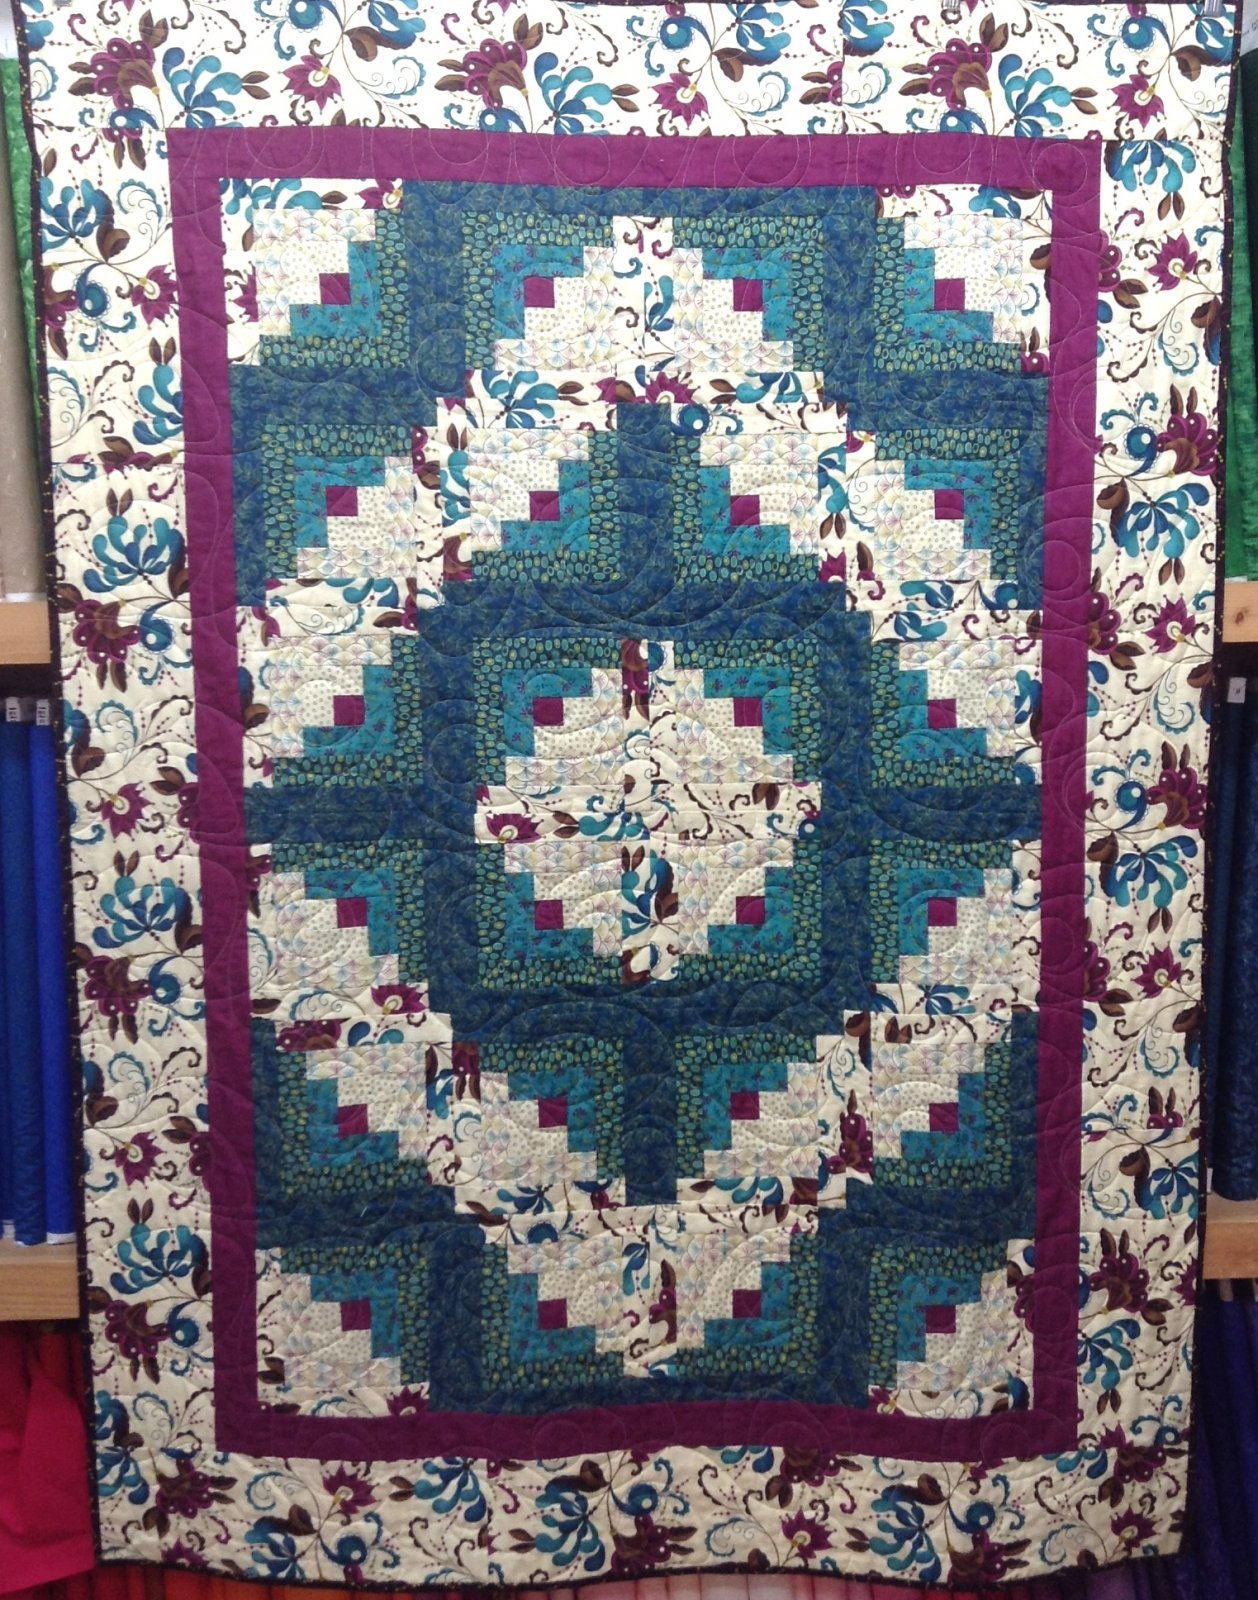 Quilt for Sale:  Soho Chic  Log Cabin - measures 50 x 68